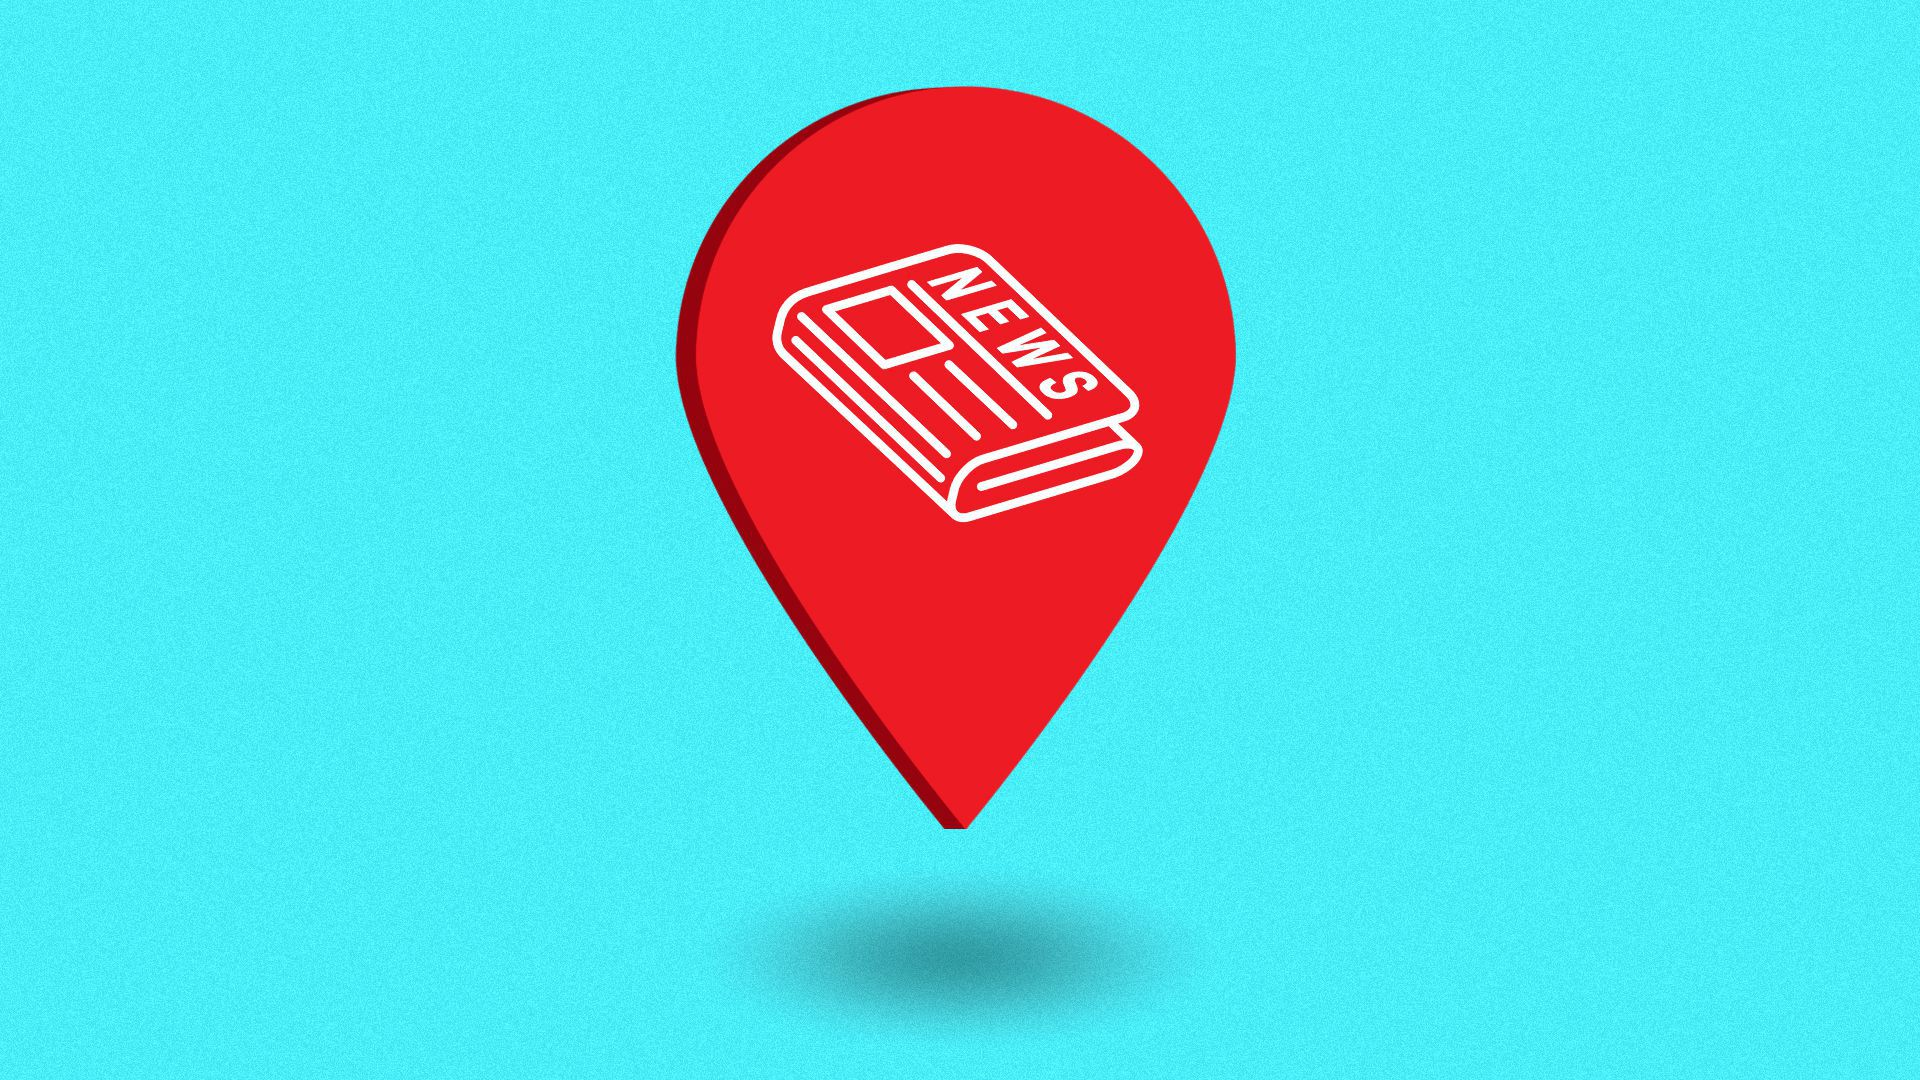 Illustration of a location pin icon with a newspaper in the center